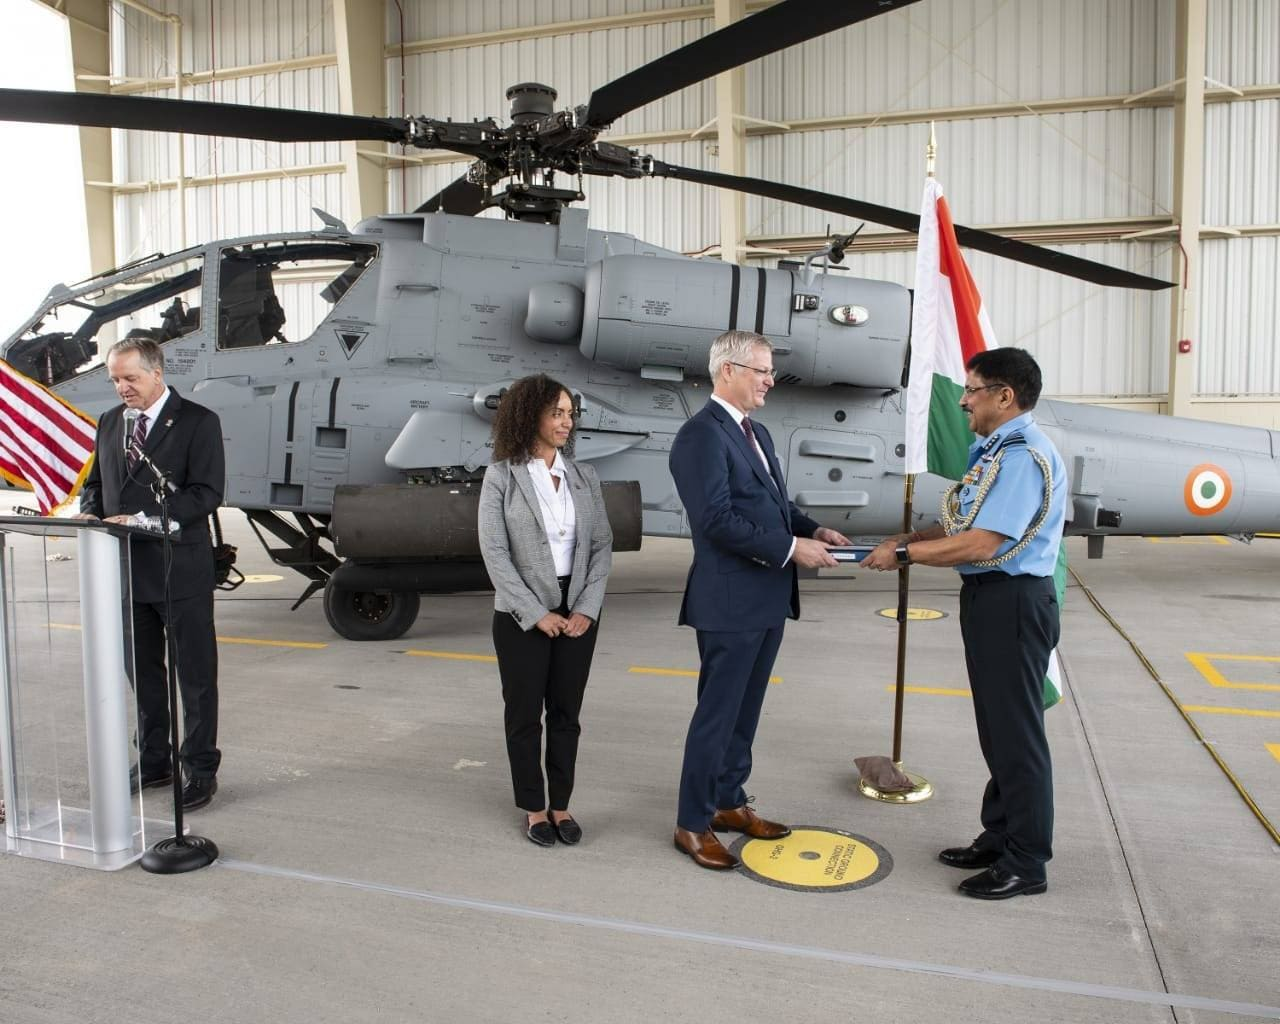 Air Marshal AS Butola, represented the IAF and accepted the first Apache in a ceremony at Boeing production facility, representatives from US government were also present. (Image credit: IAF Facebook page)